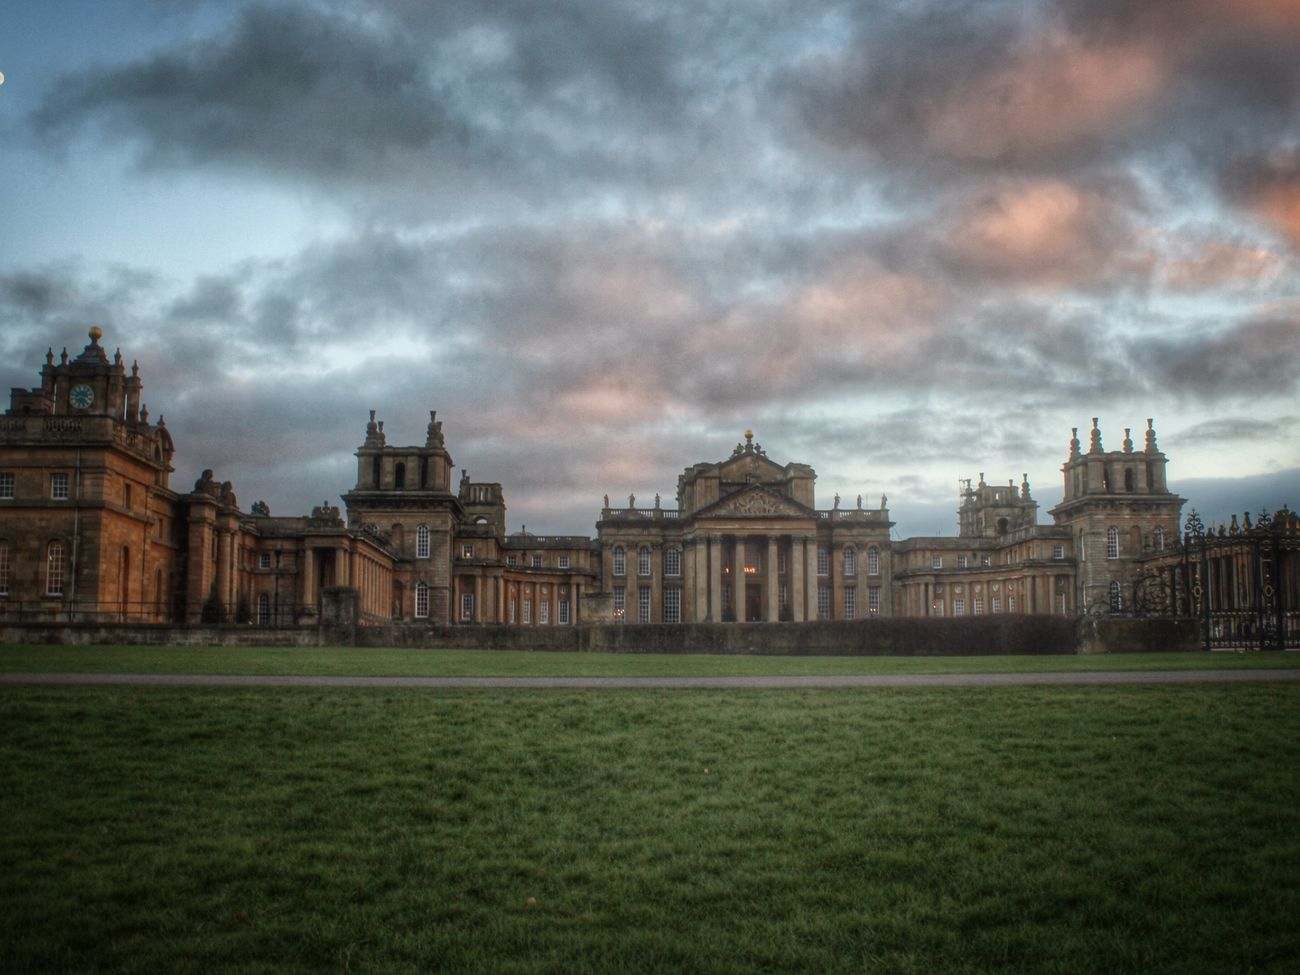 This took a little while but I managed a shot eventually with no people in view....I know some of you will relate to this! Lol Streamzoofamily EyeEm Best Edits EyeEm Gallery Check This Out Blenheimpalace Enjoying Life Buildings Historical Building Historical Sights